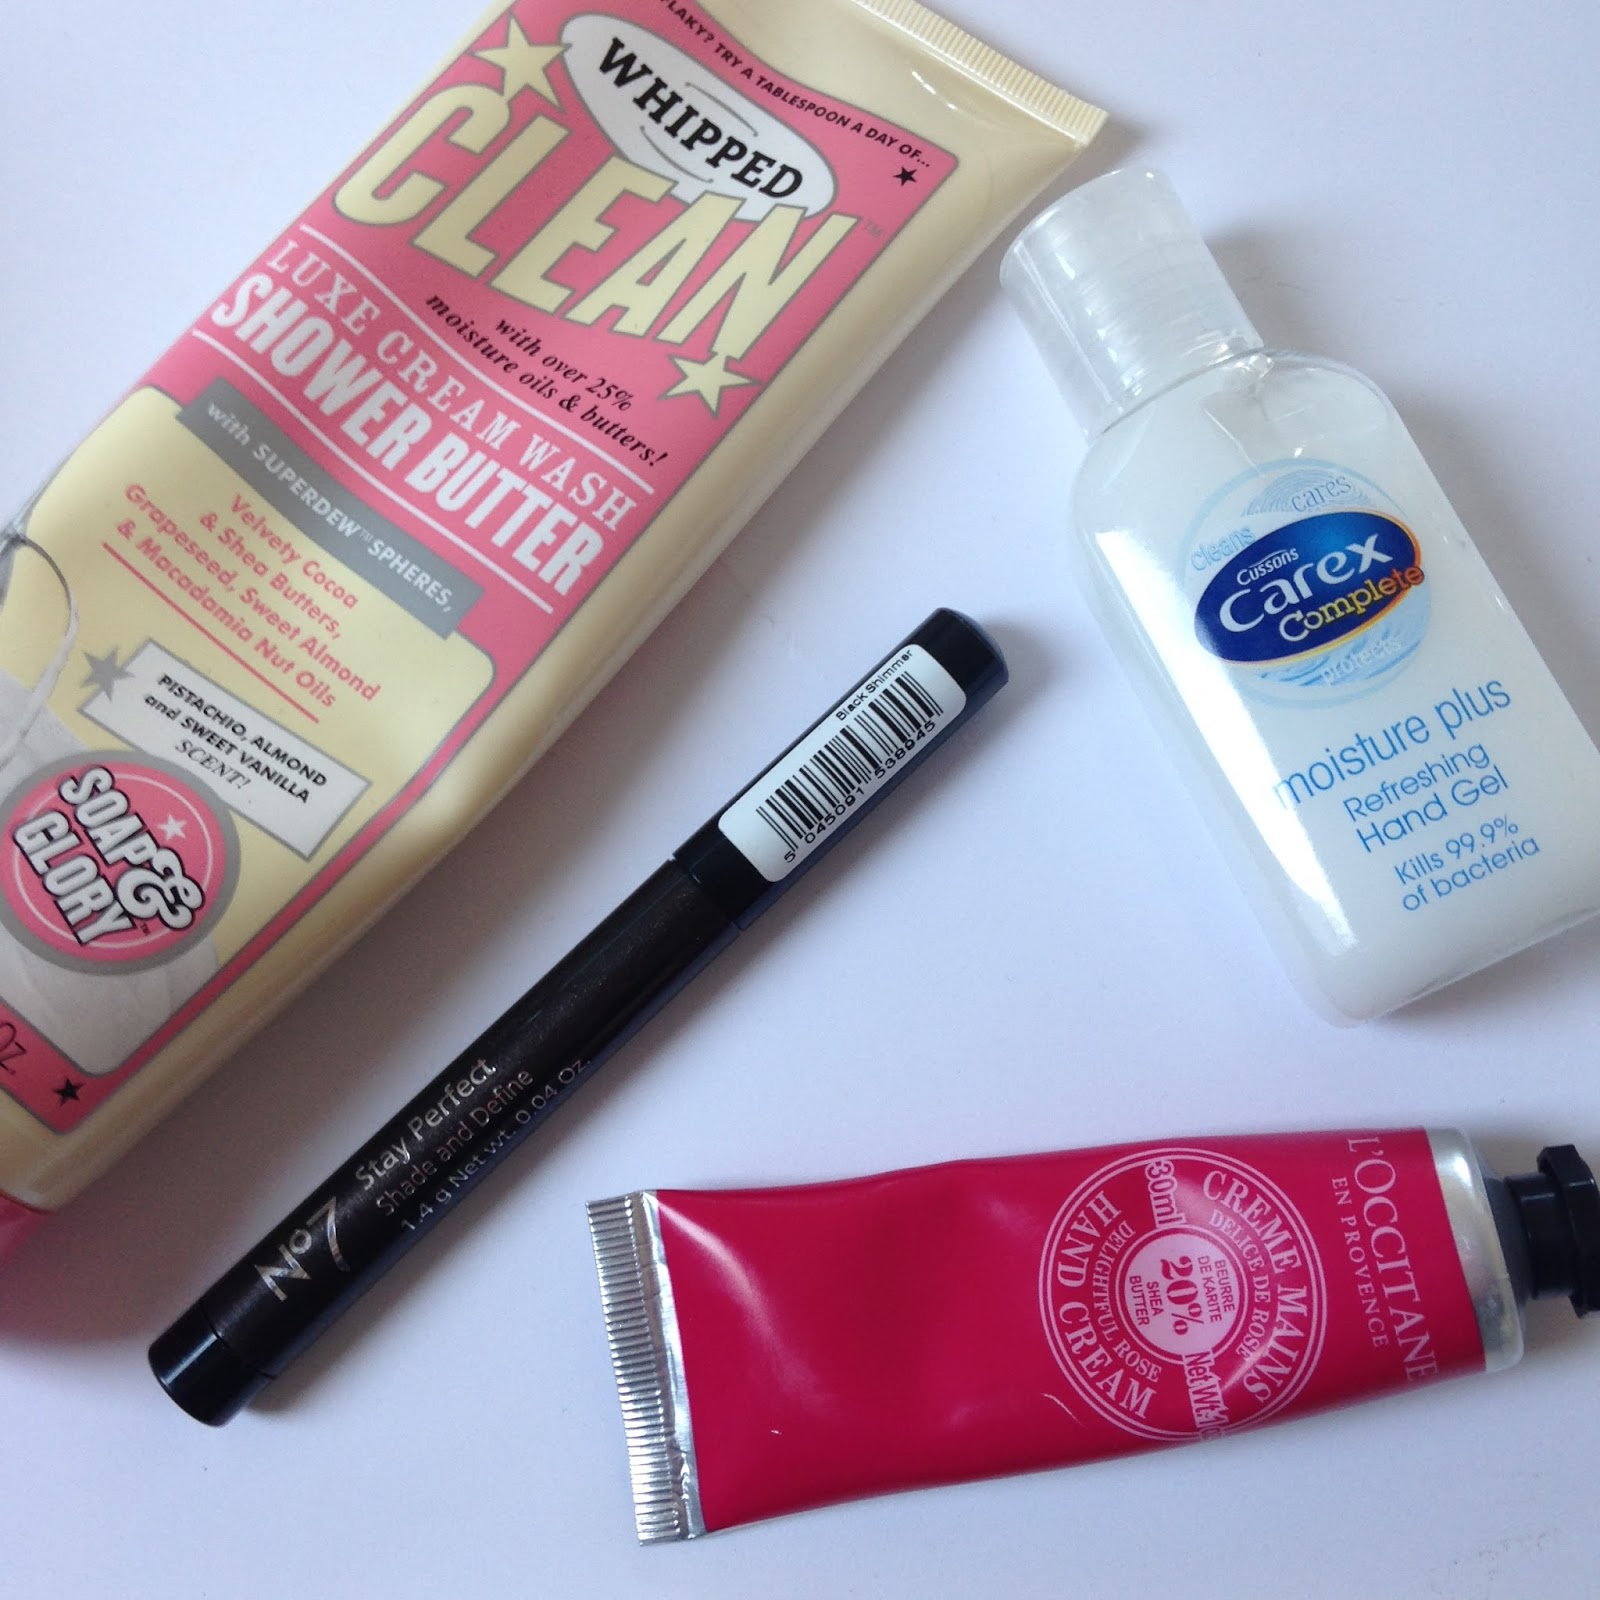 My New Mum Beauty Essentials.